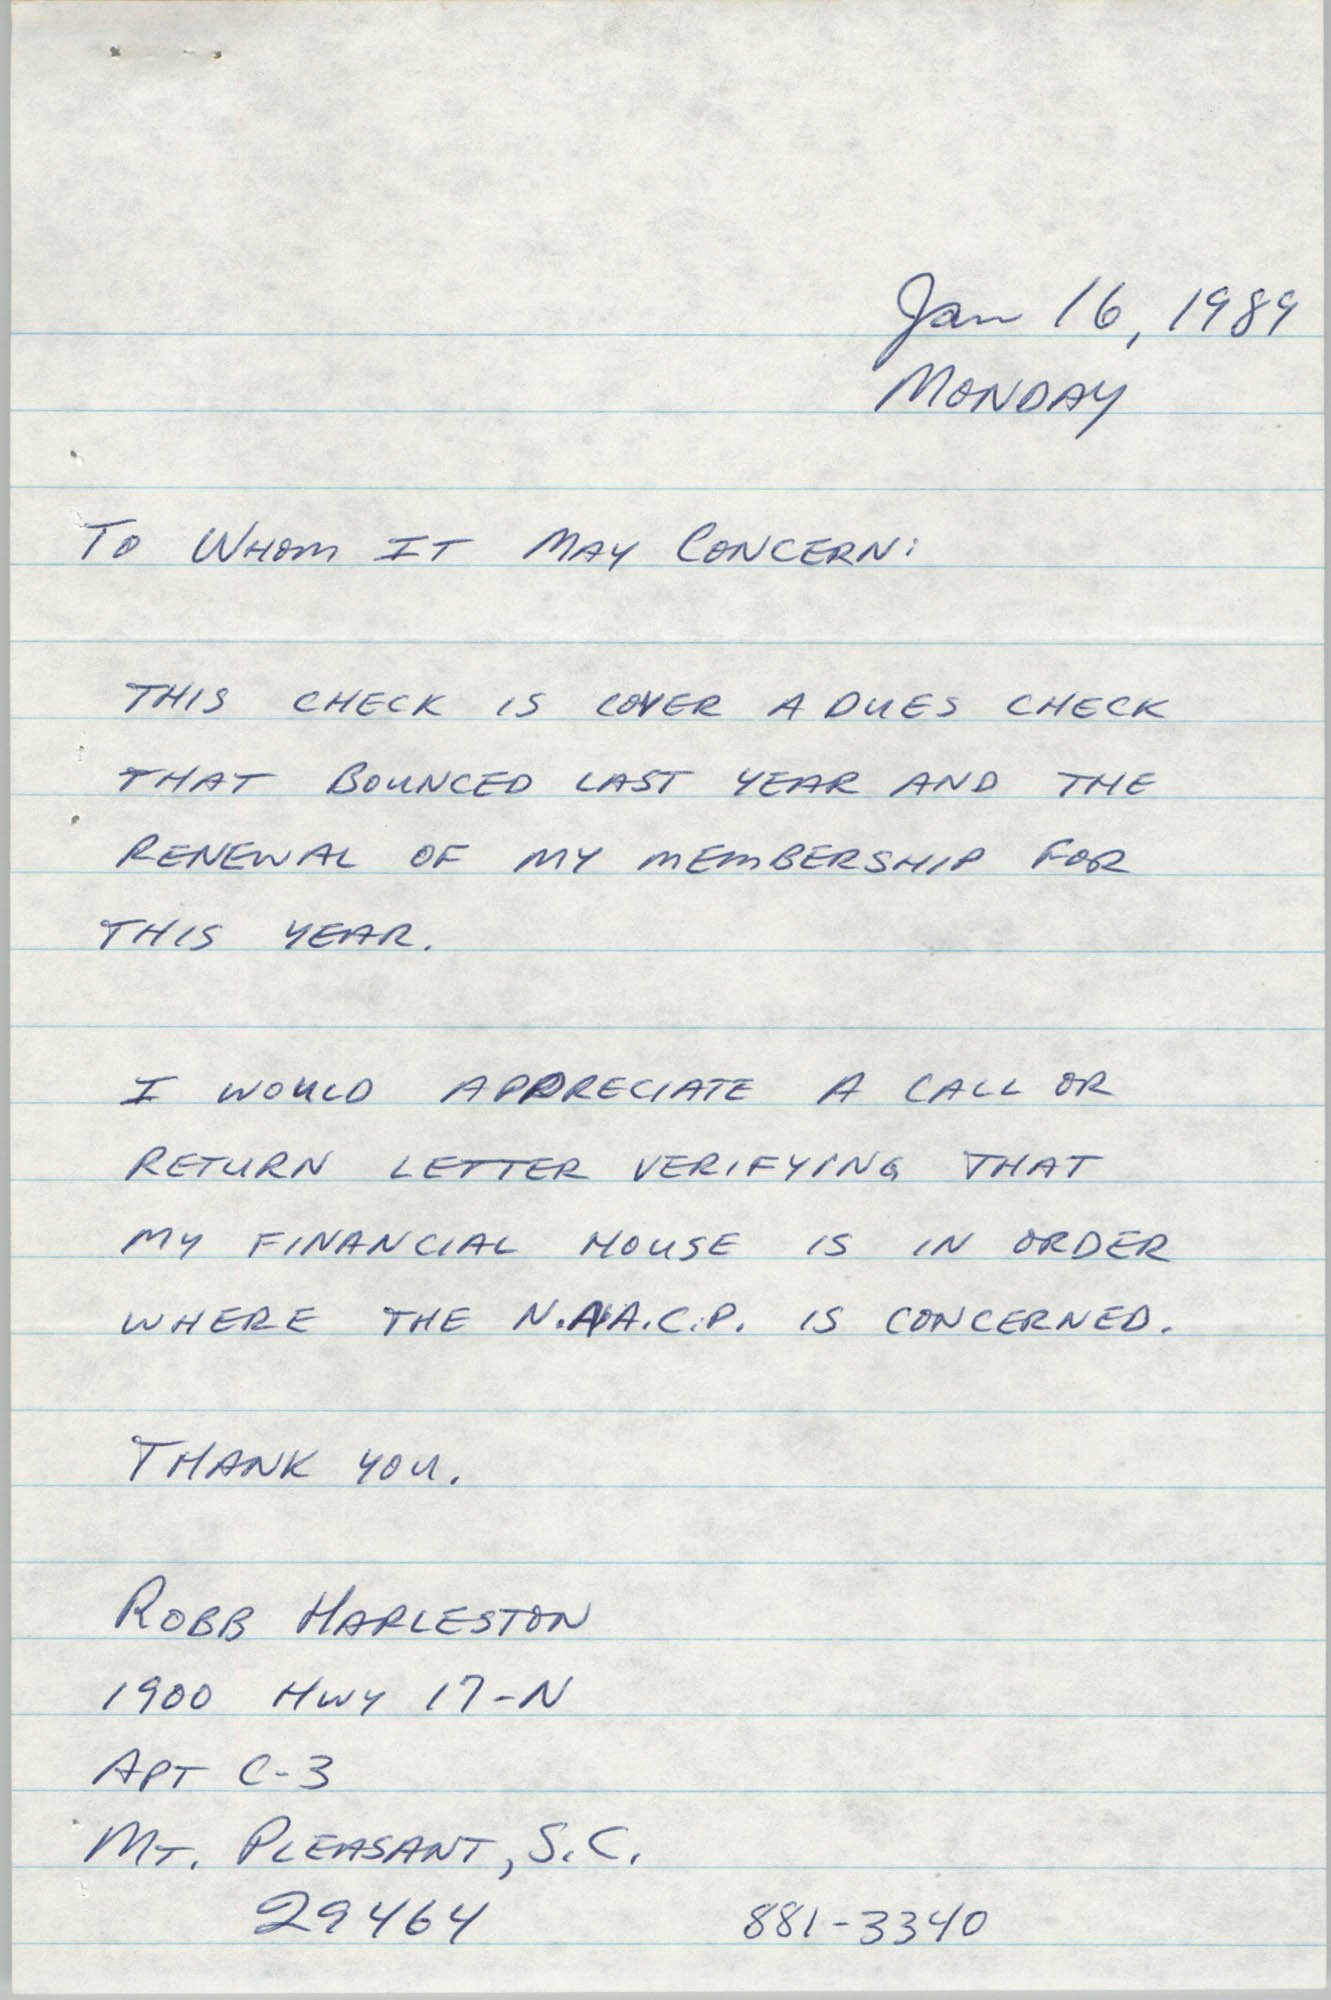 Letter from Robb Harleston, January 16, 1989